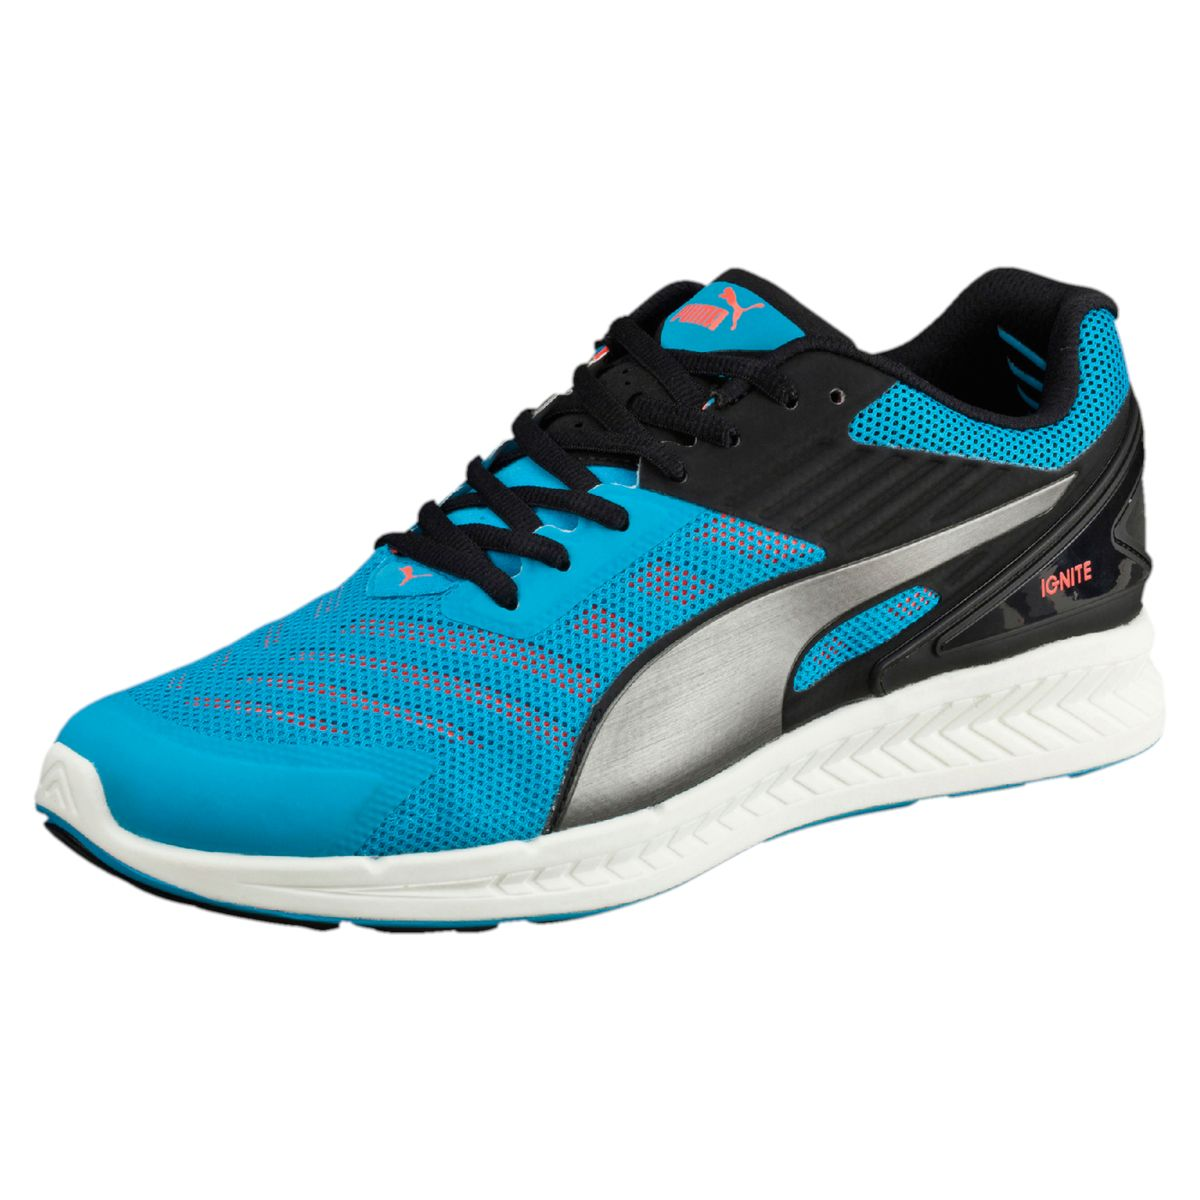 puma ignite v2 mens running shoes sweatbandcom